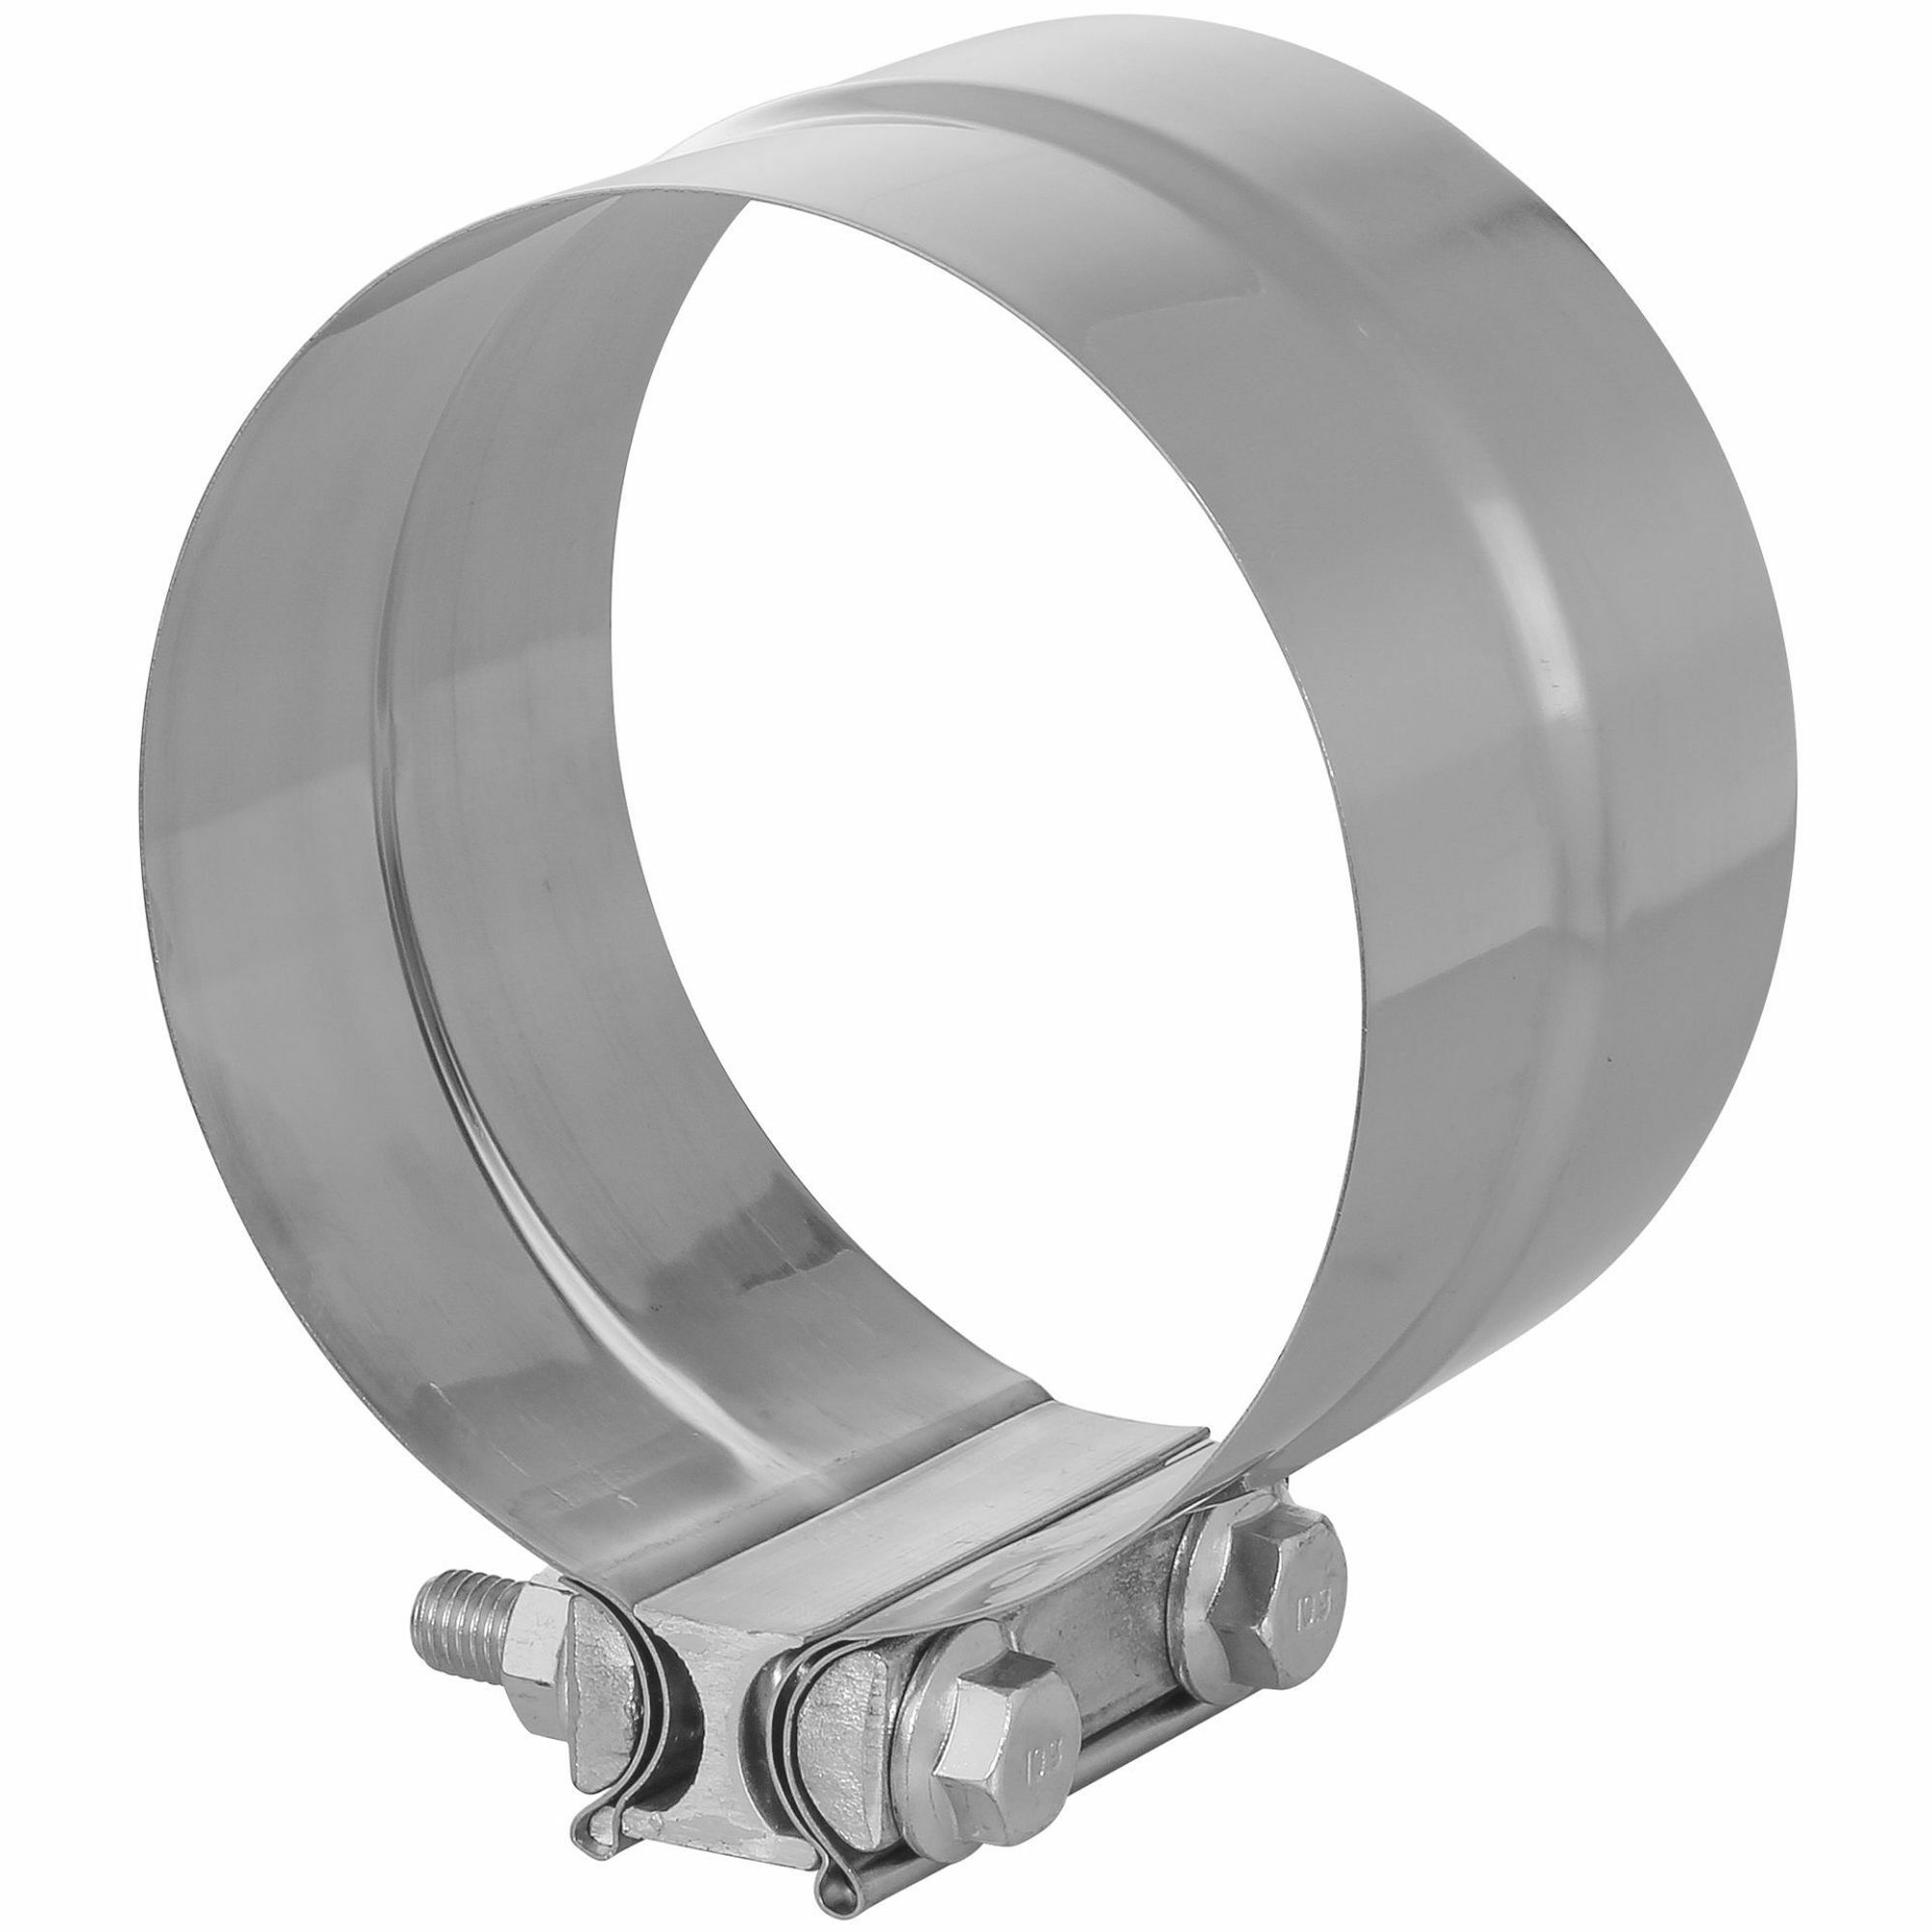 TOTALFLOW TF-J64 Lap Joint Exhaust Muffler Clamp Band | 5 Inch